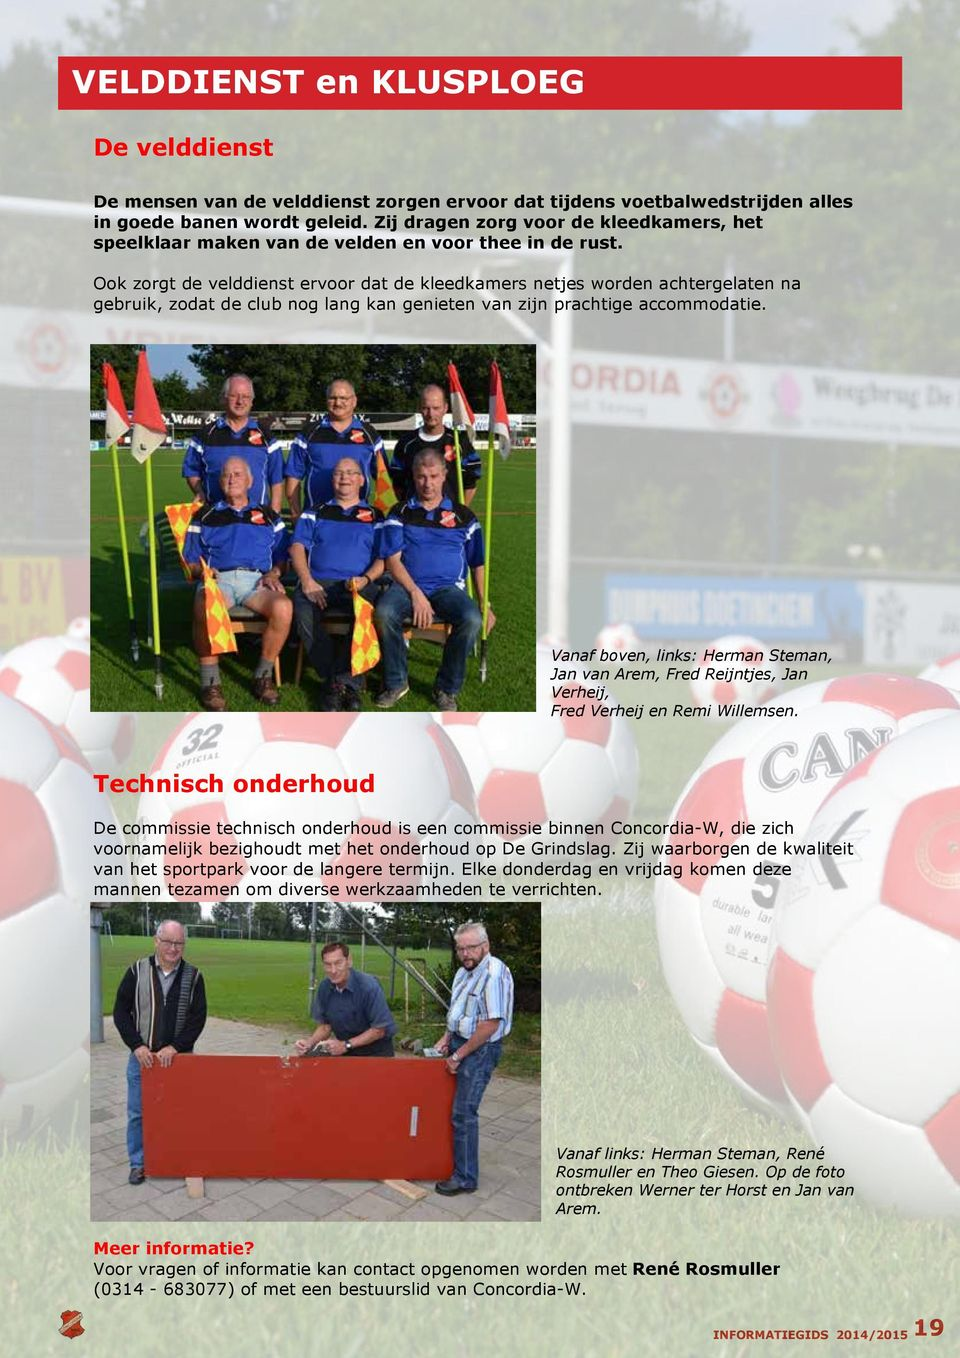 Vanaf bov, links: Hman Steman, Jan Arem, Fred Reijnts, Jan Vheij, Fred Vheij Remi Willems.